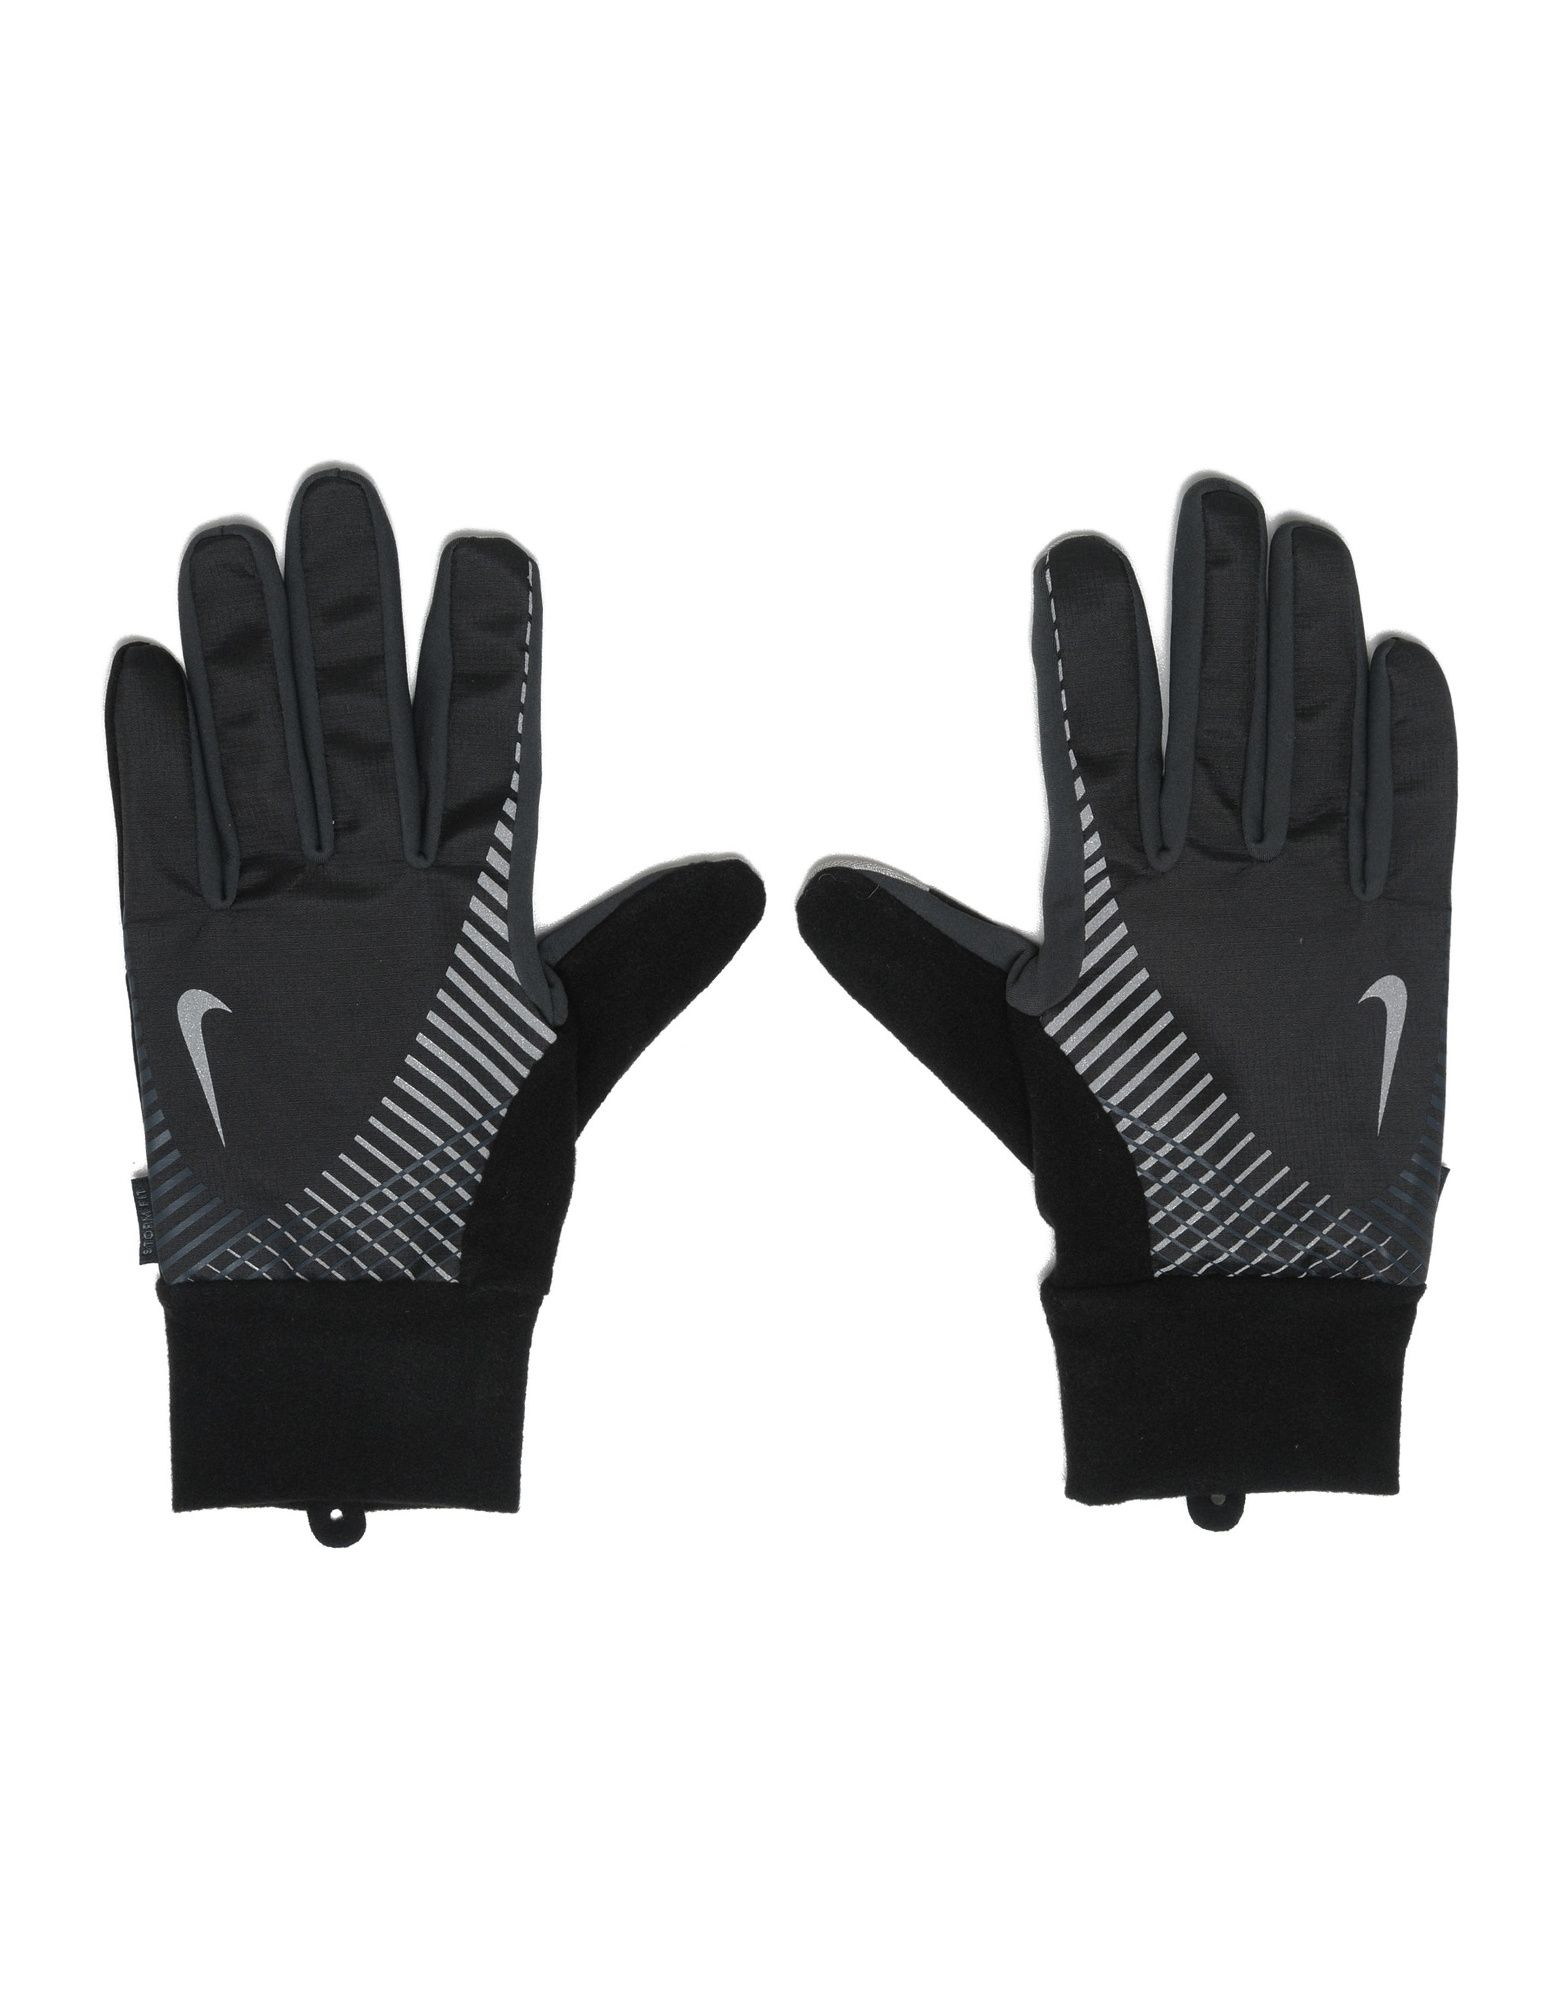 Nike Storm-FIT Elite Running Gloves